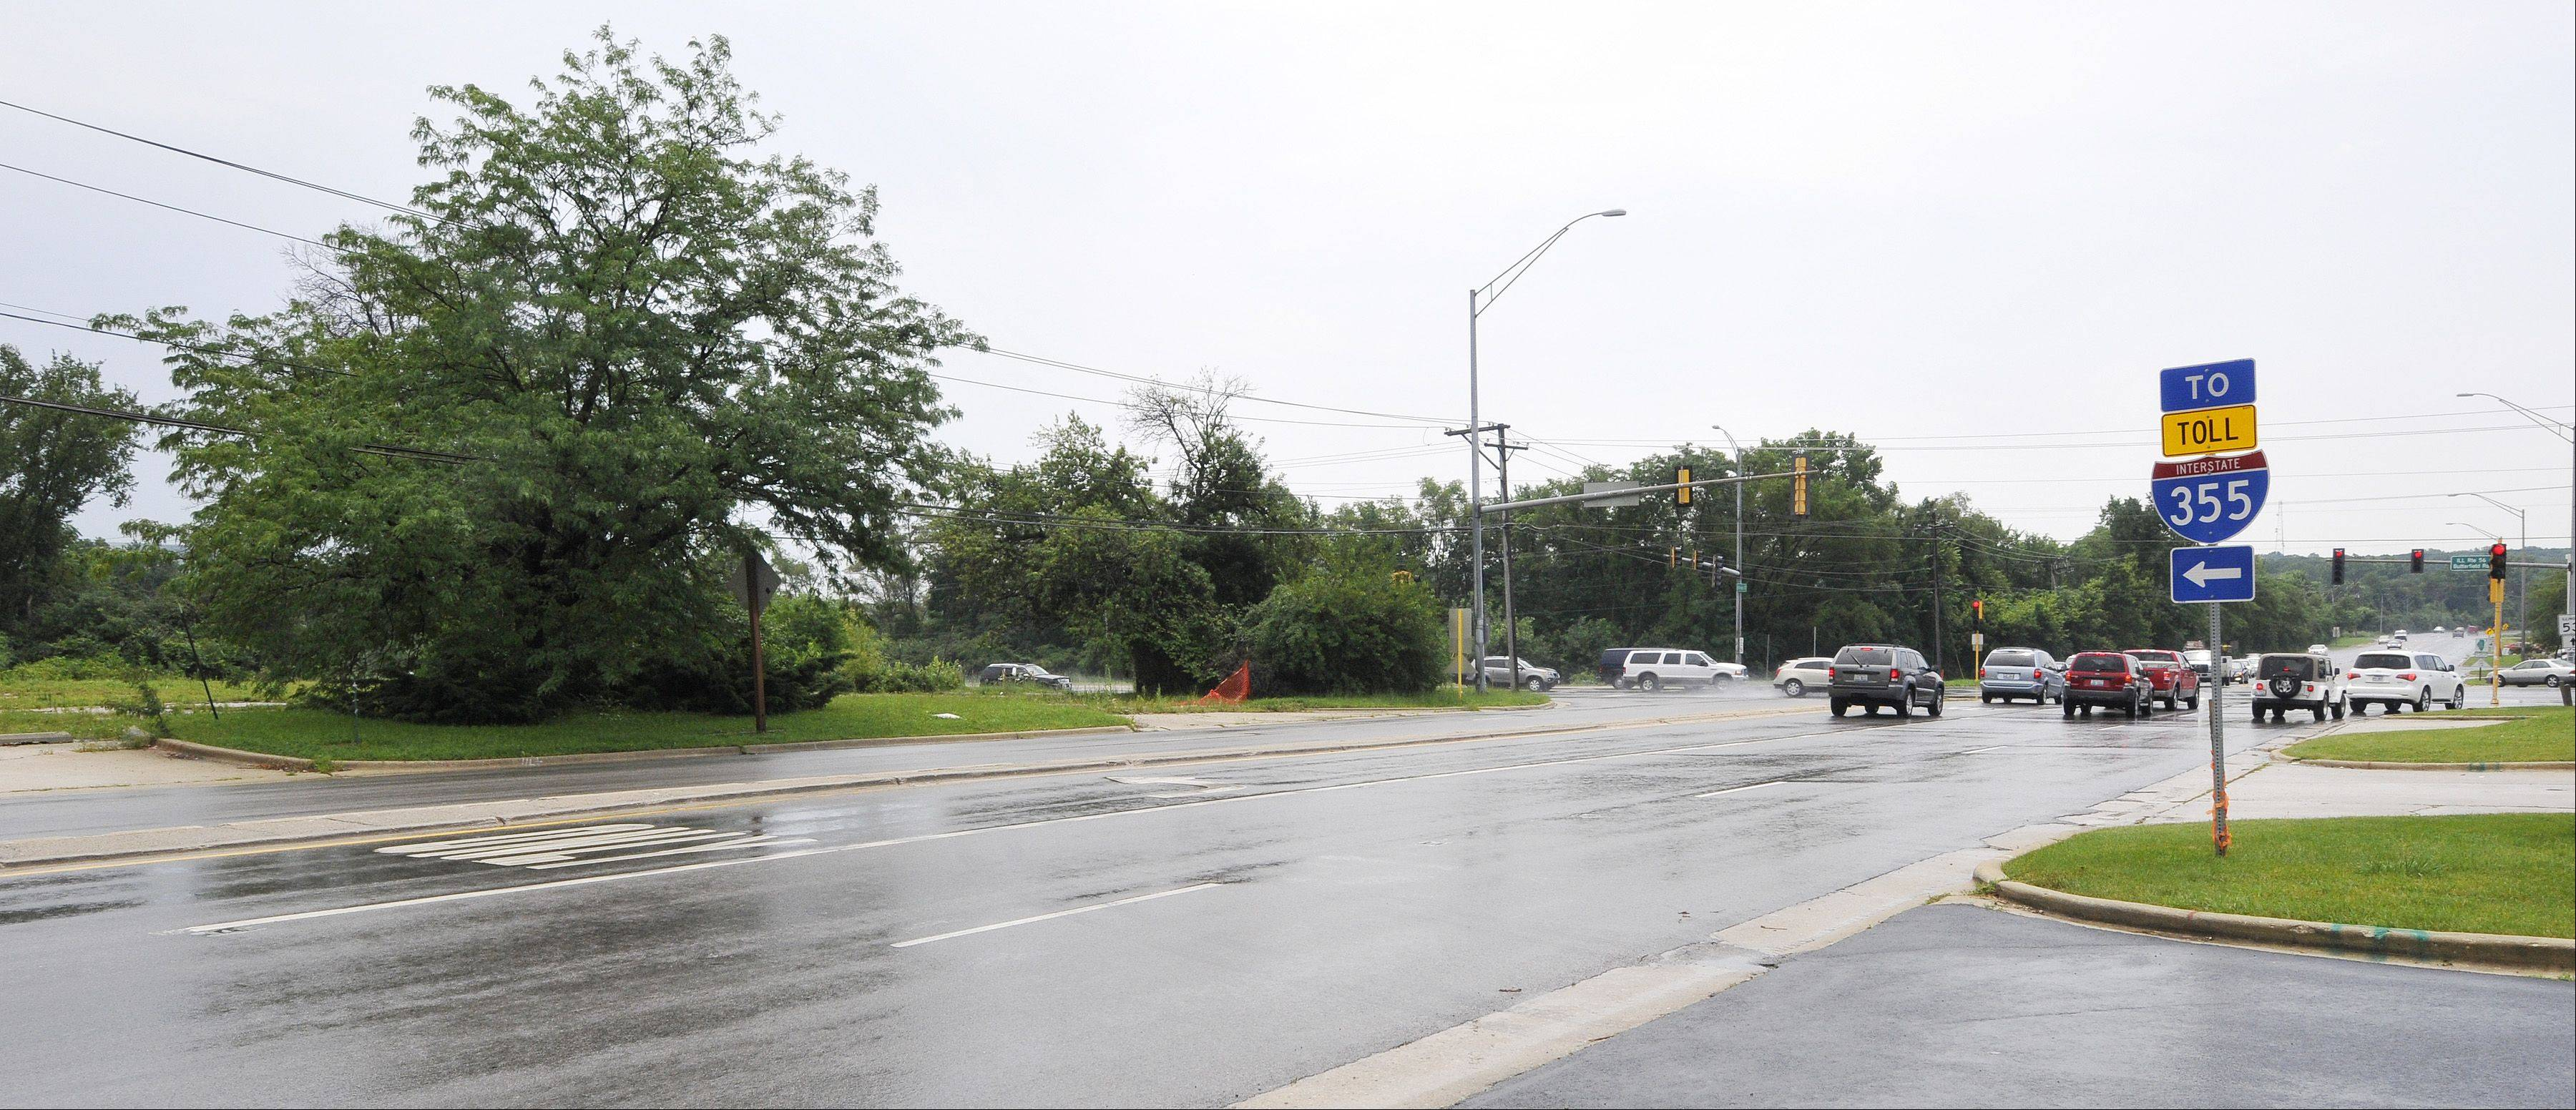 A new gas station, convenience store and car wash is proposed for a 1.5-acre site on the northeast corner of Route 53 and Butterfield Road in an unincorporated area near Glen Ellyn. The location is the former site of a Shell gas station.